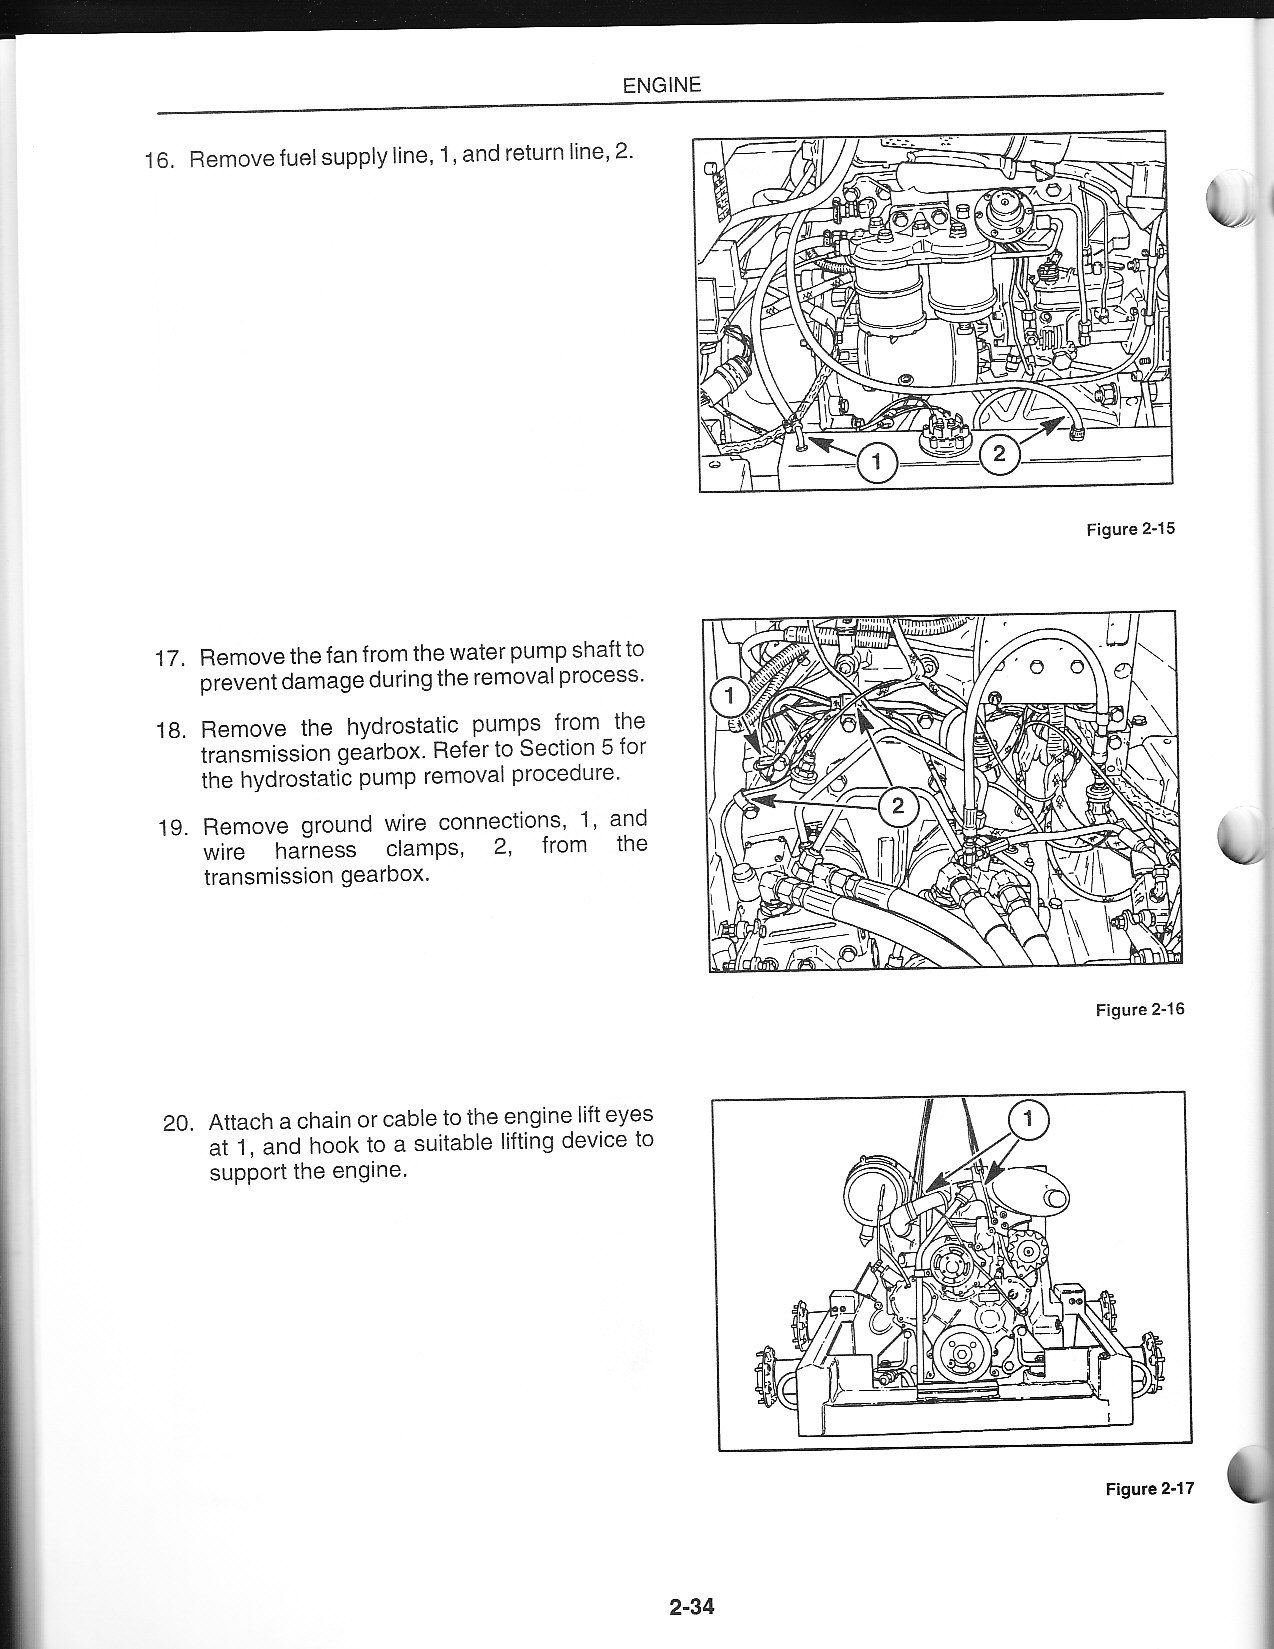 2012 04 06_031648_lx885_removl_0004 new holland lx885 service manual download youtube on wiring new holland lx885 wiring diagram at panicattacktreatment.co